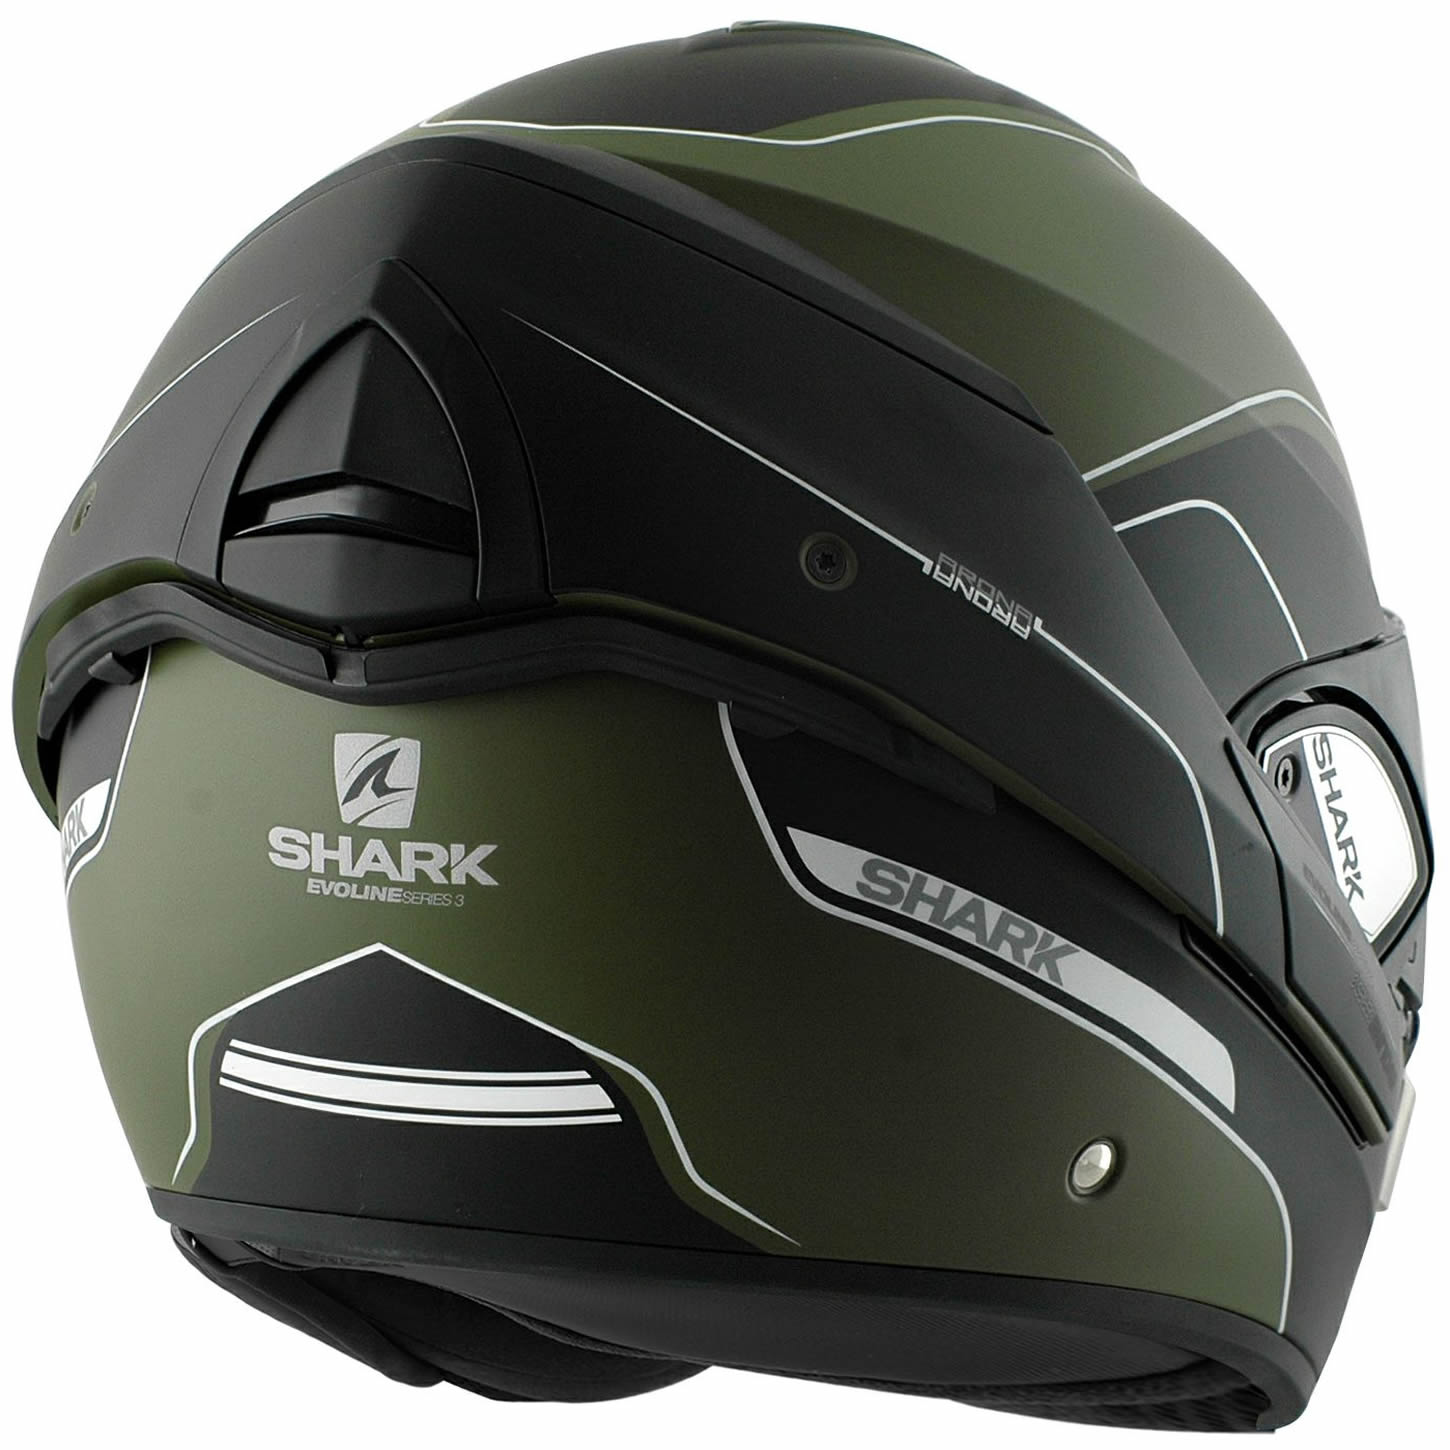 shark evoline series 3 arona matt green black motorbike helmet flip up front gkw ebay. Black Bedroom Furniture Sets. Home Design Ideas